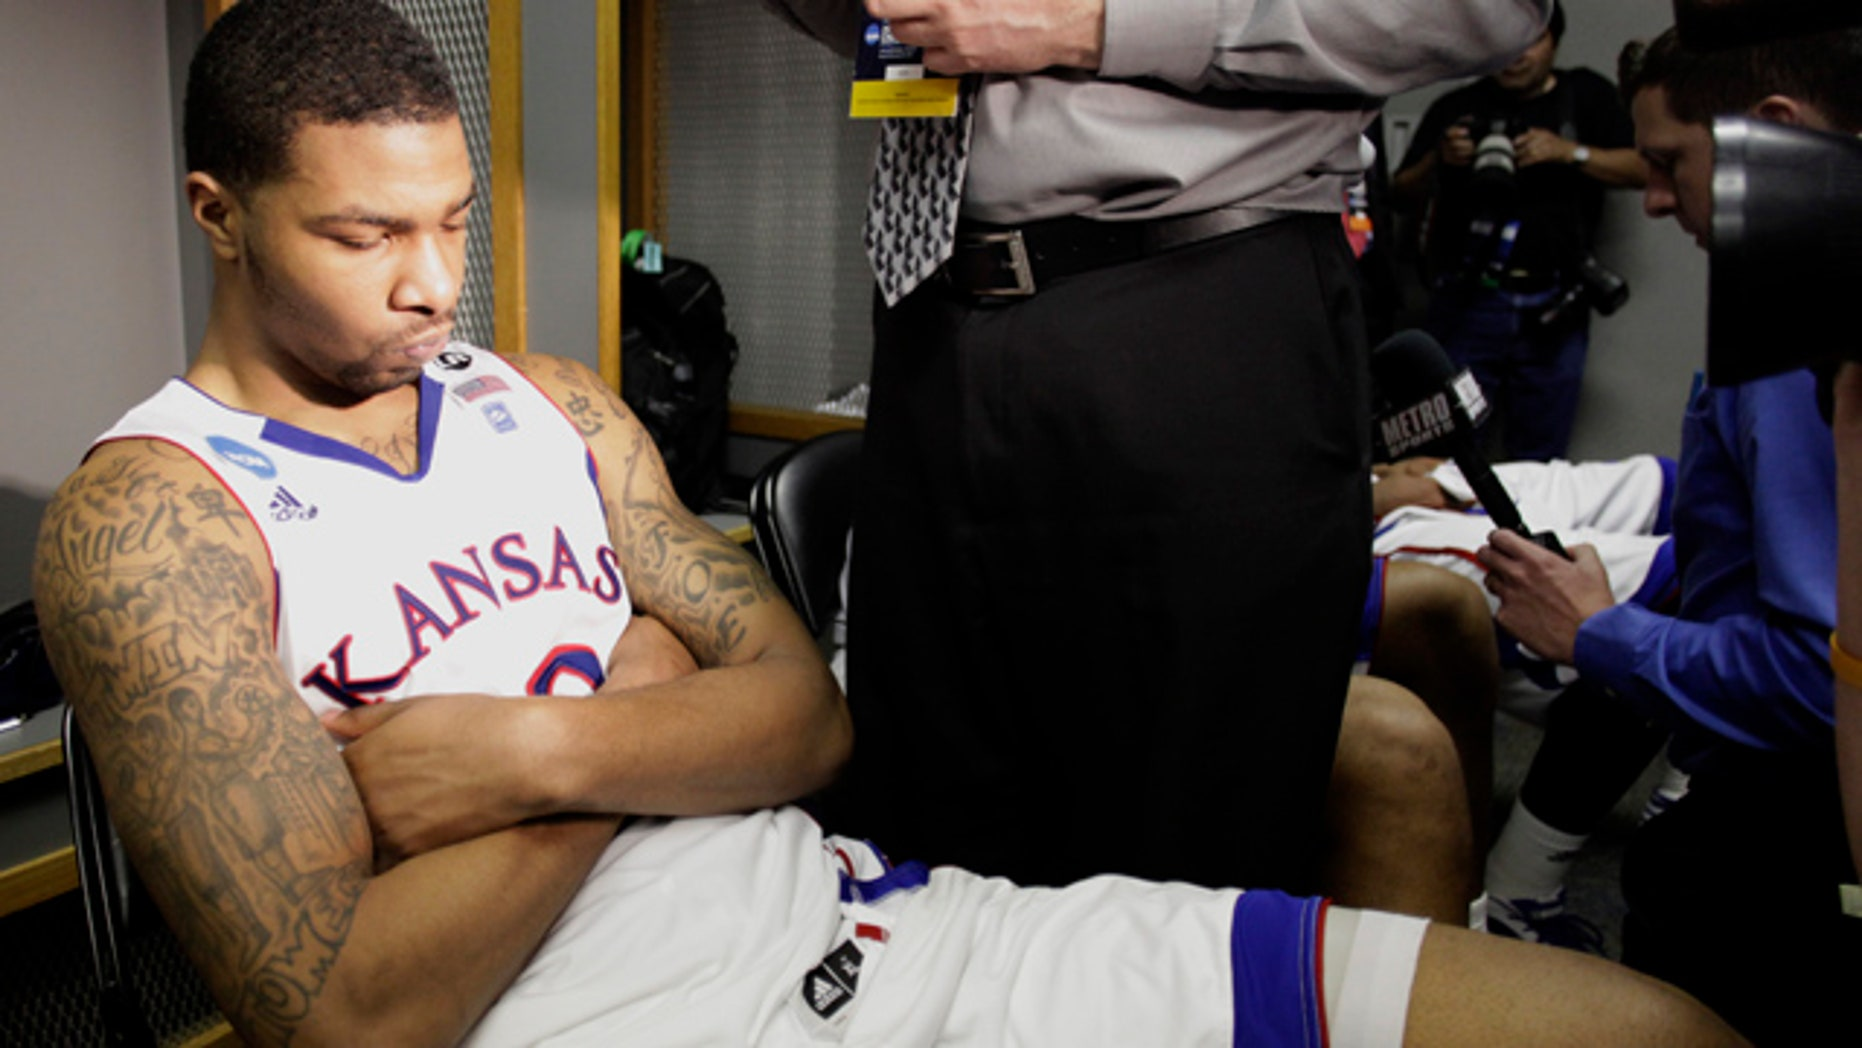 March 27, 2011: Kansas' Elijah Marcus Morris reacts in the locker room after losing 71-61 to Virginia Commonwealth at the Southwest regional final game in the NCAA college basketball tournament.